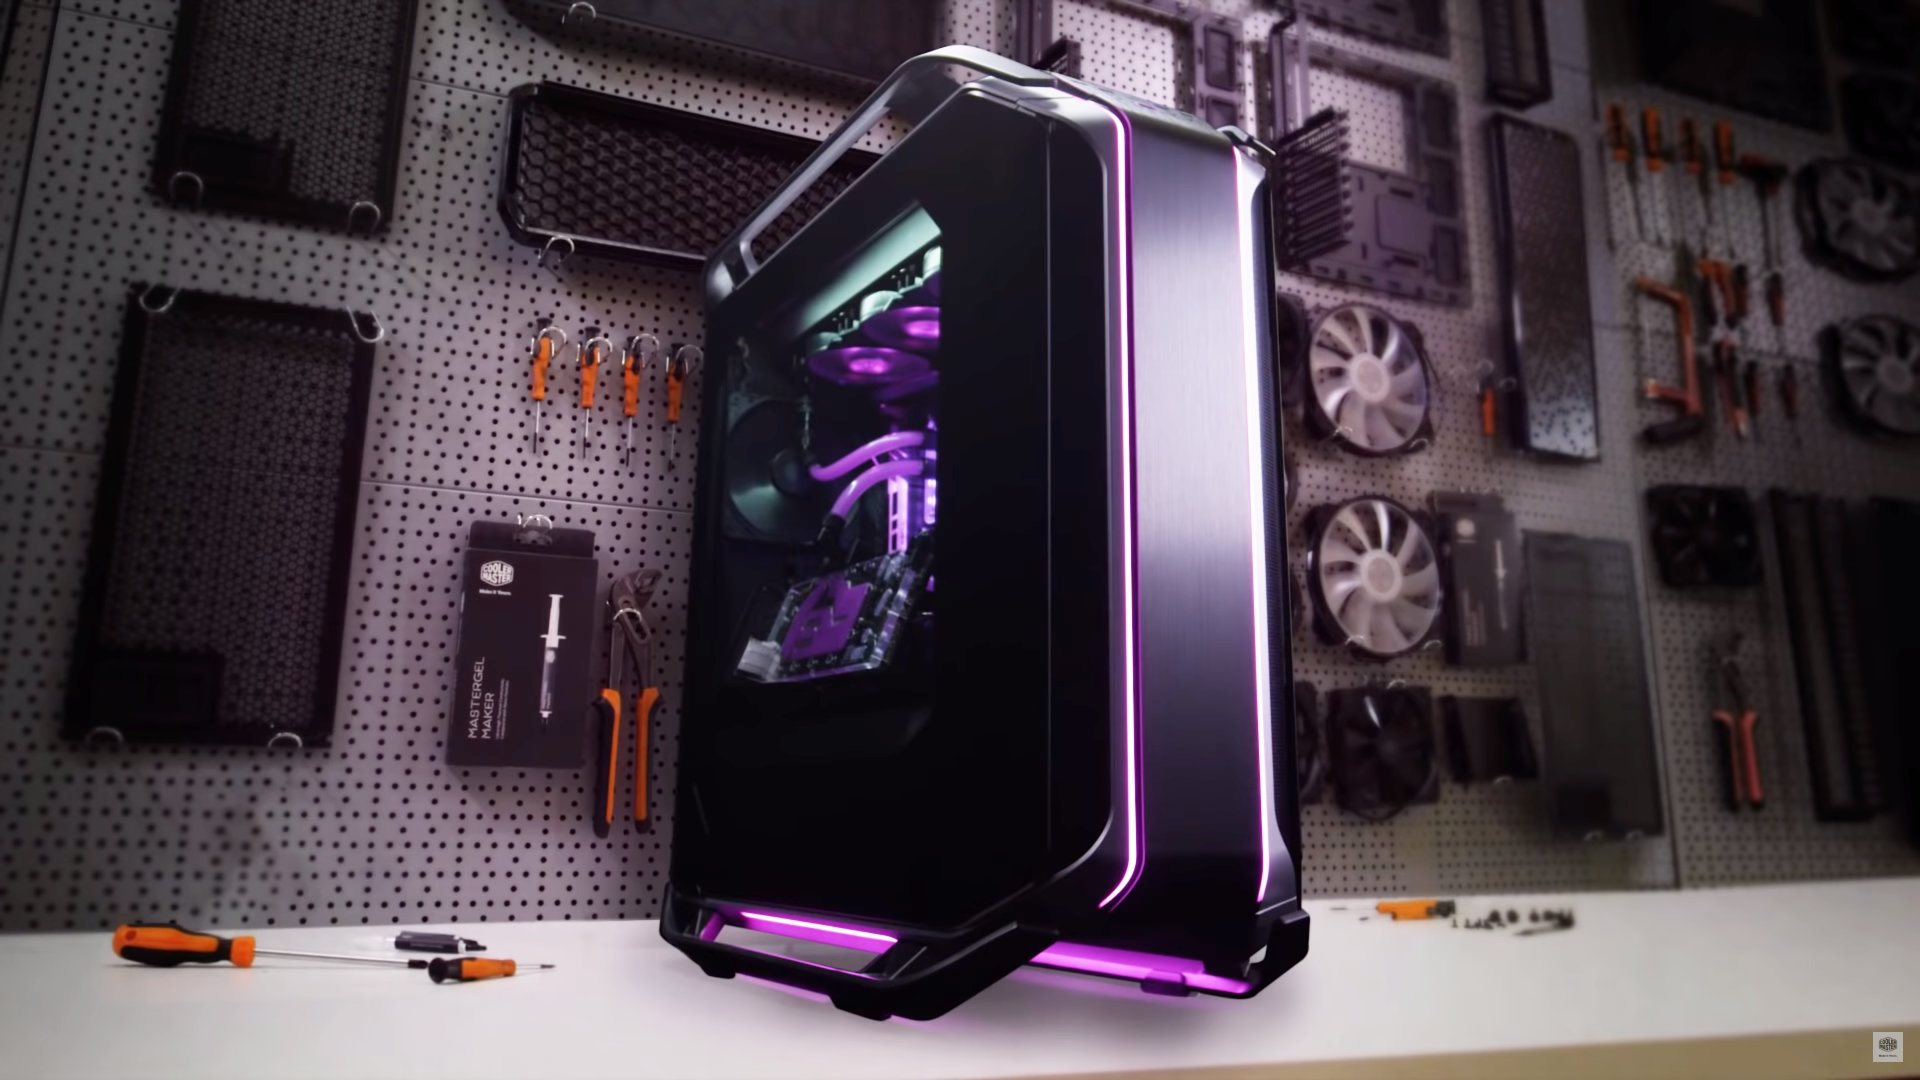 Best PC case in 2021 – the top chassis to house your new build